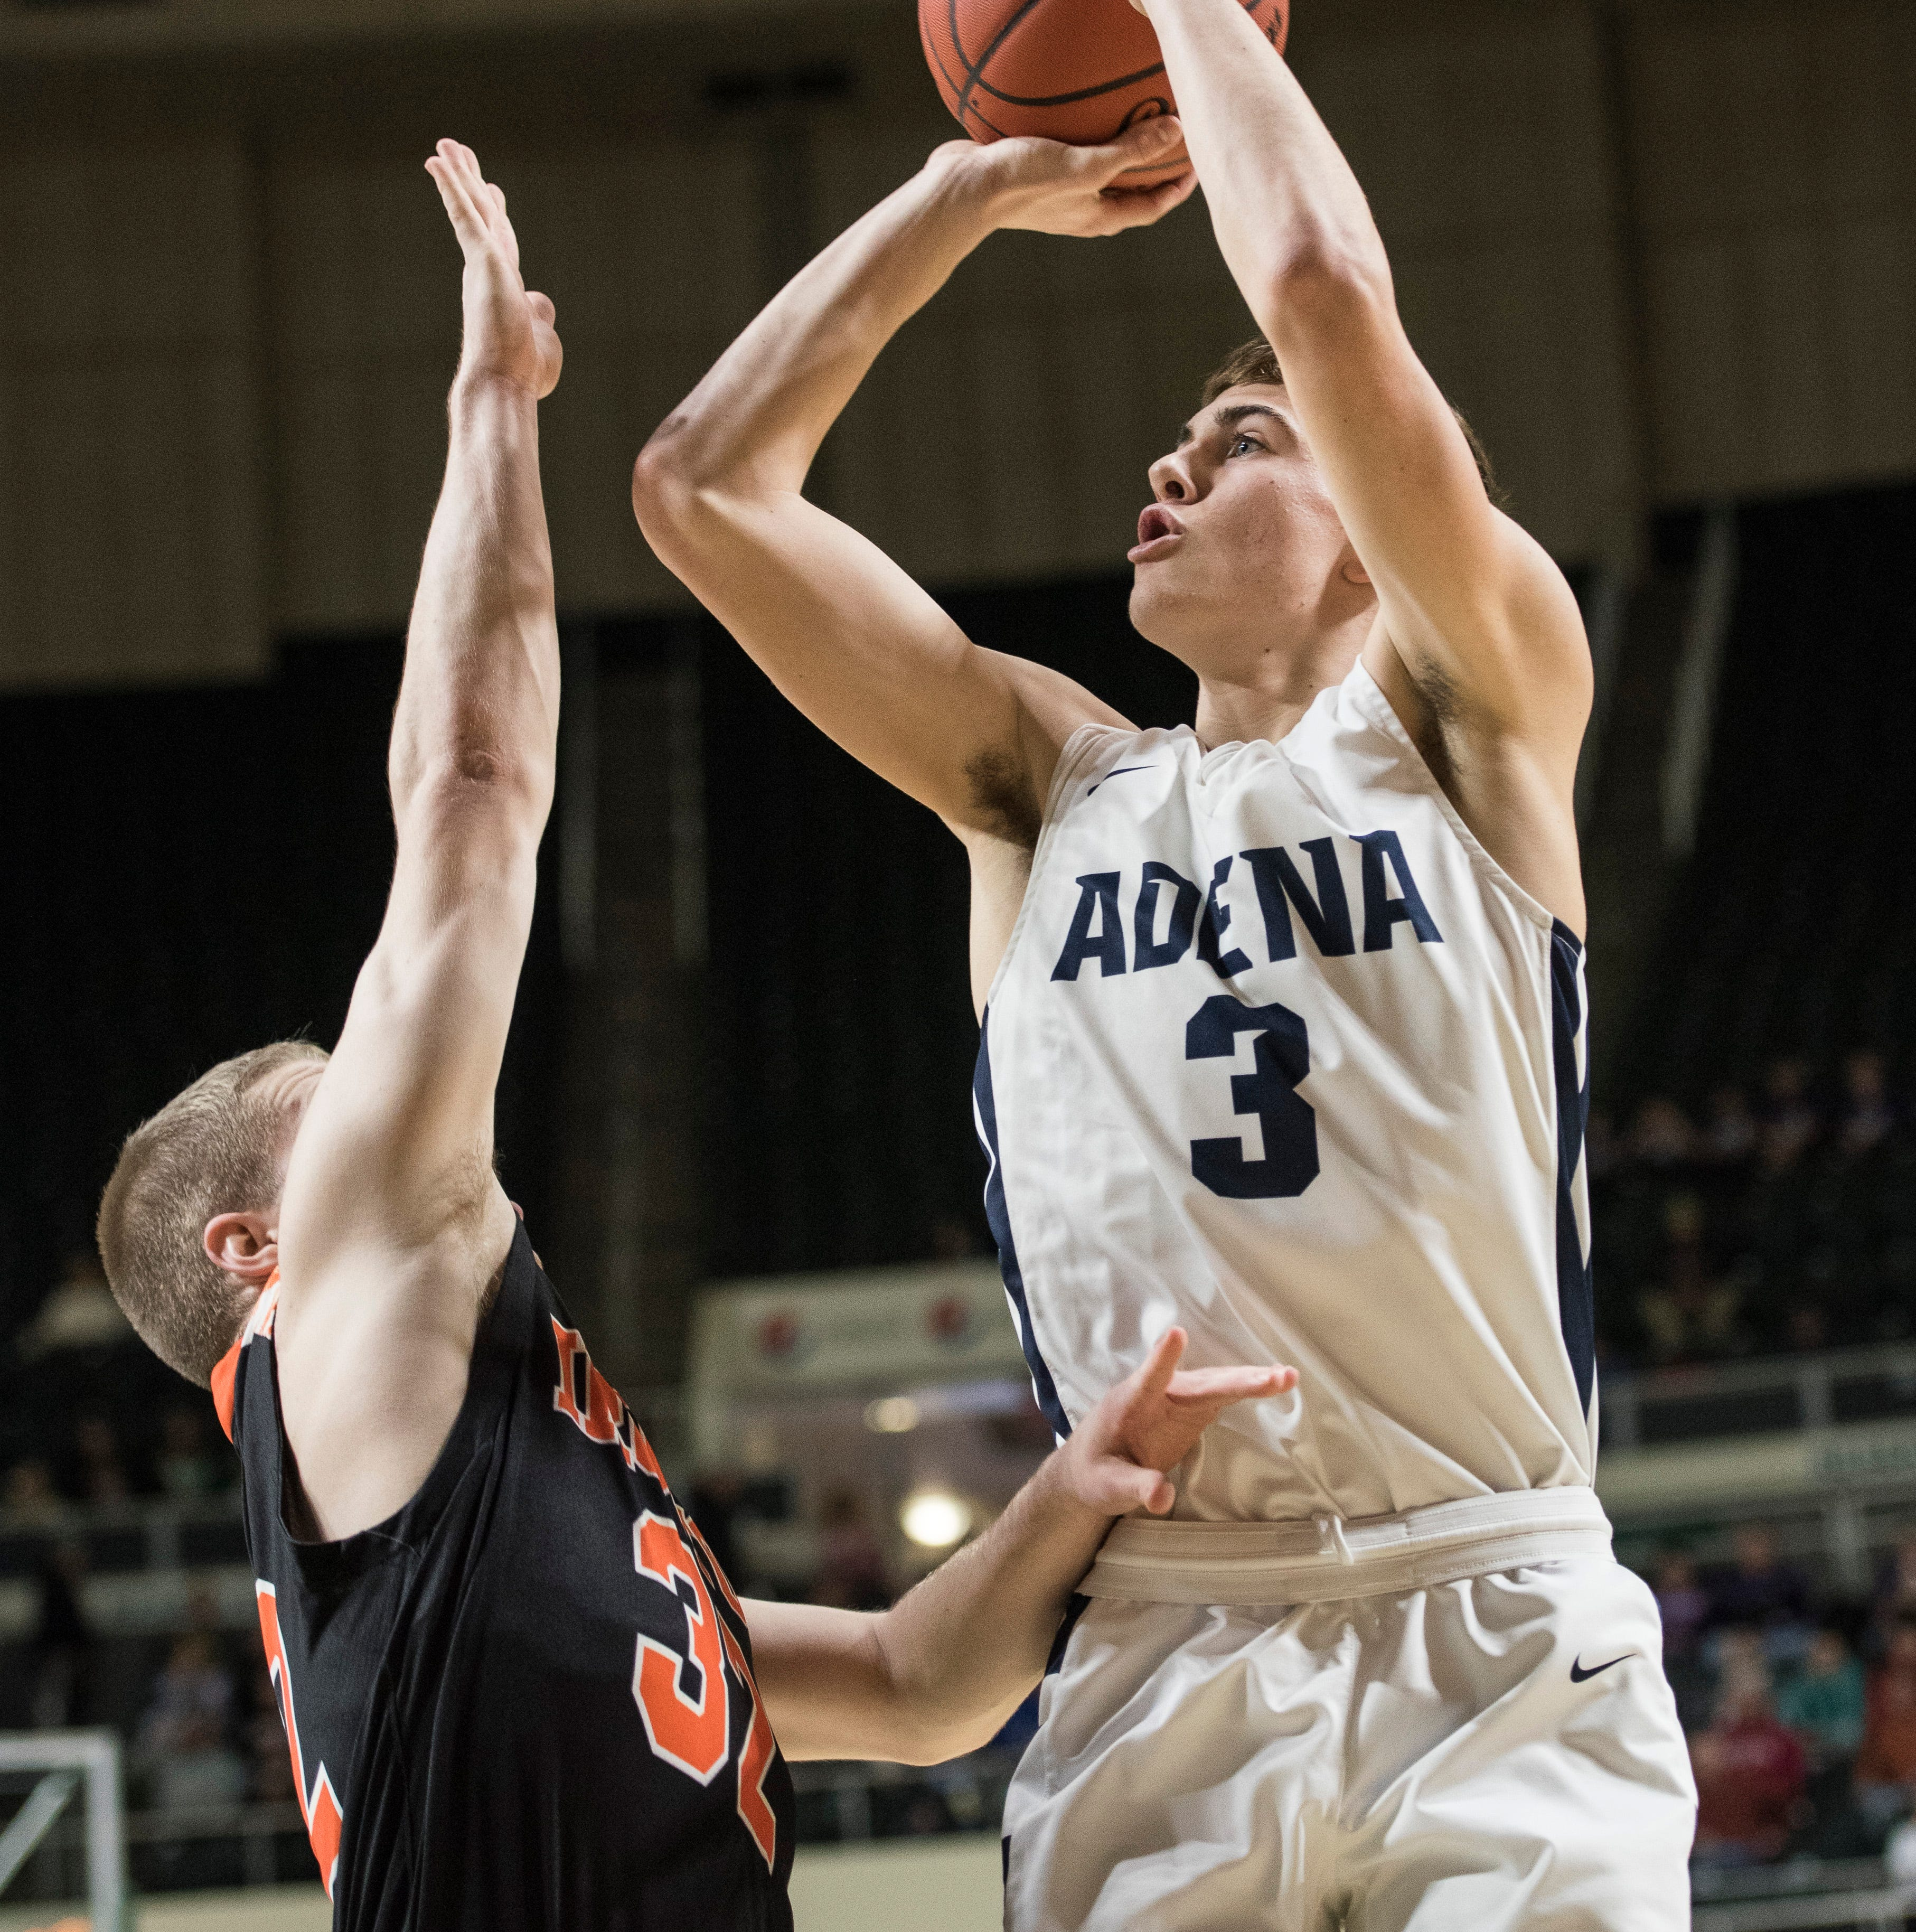 OHIO HS BOYS BASKETBALL: Previewing Adena's district final game against Chesapeake